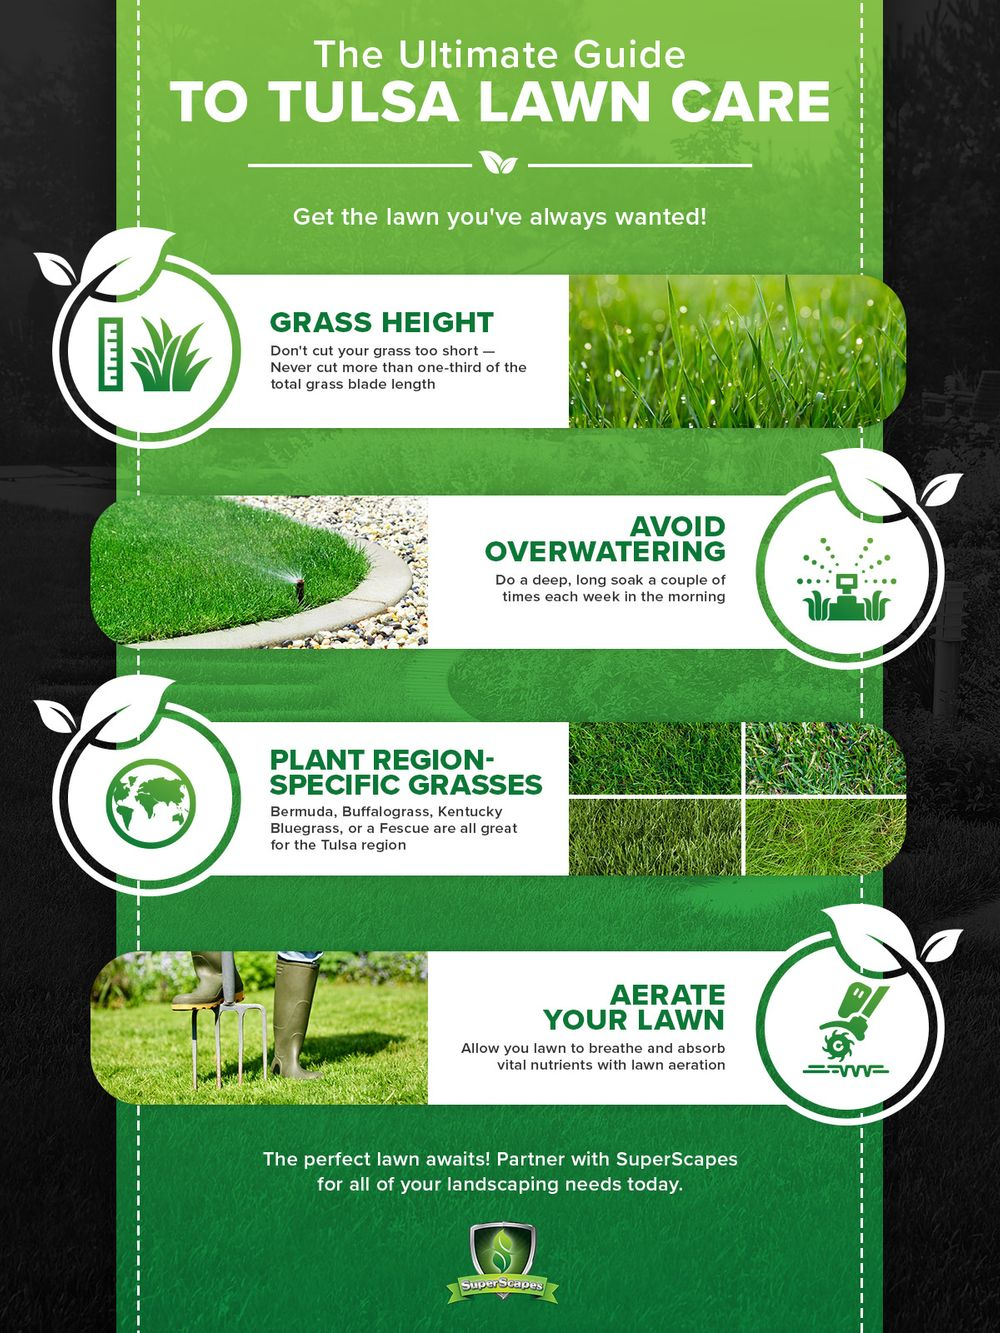 The Ultimate Guide To Tulsa Lawn Care infographic.jpg